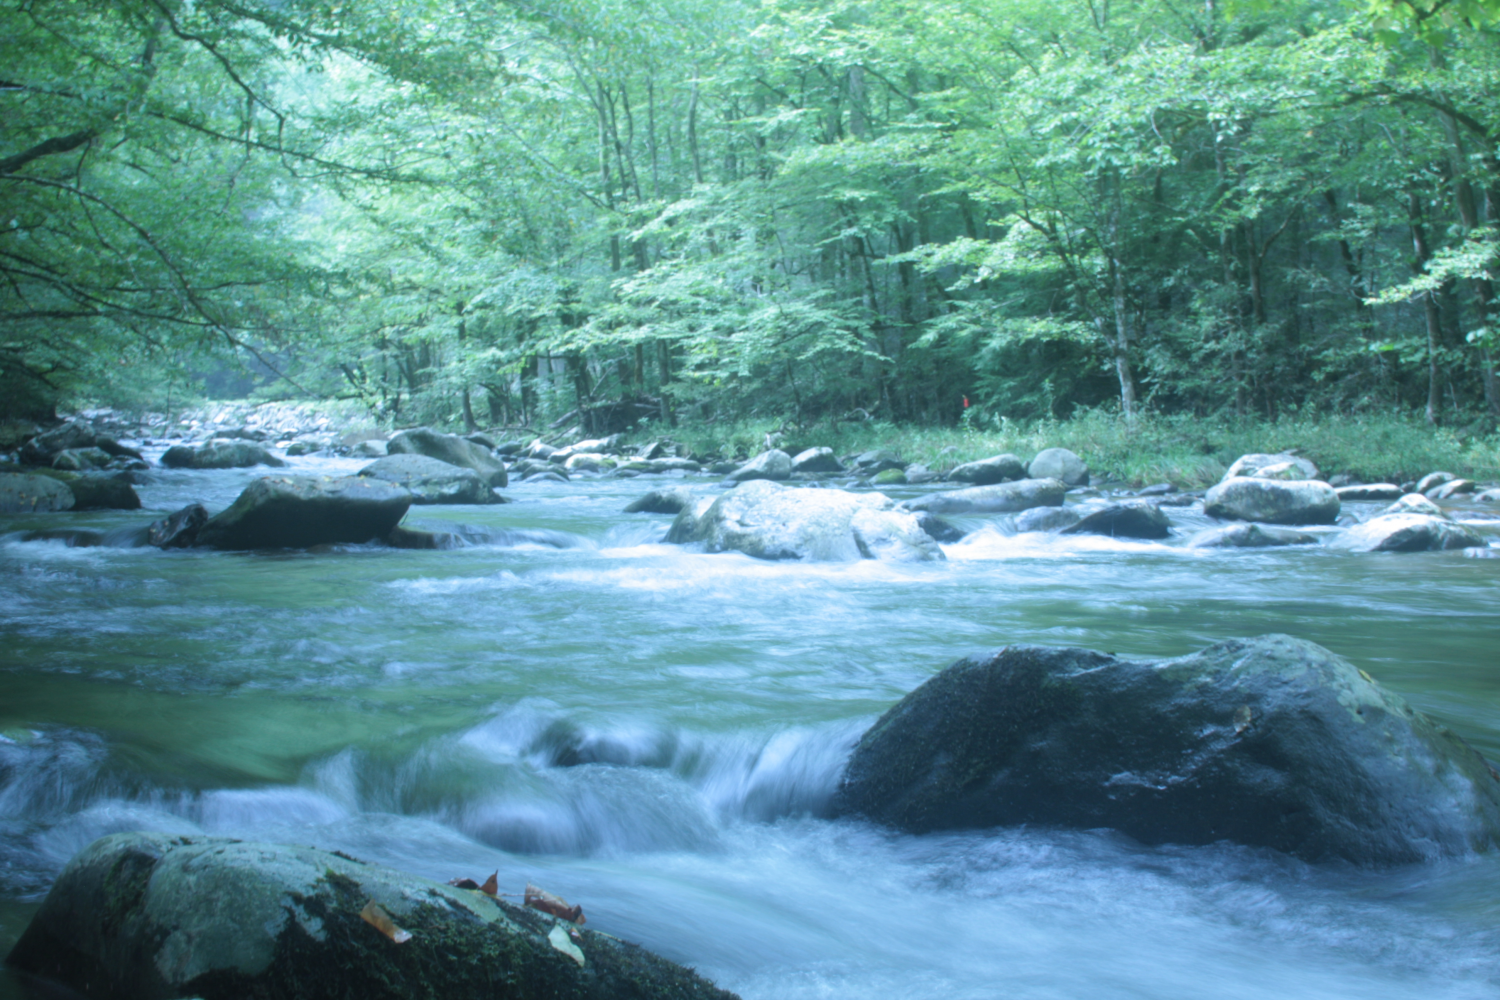 Water rushes downstream through large rocks in a creek surrounded by leafy green trees.